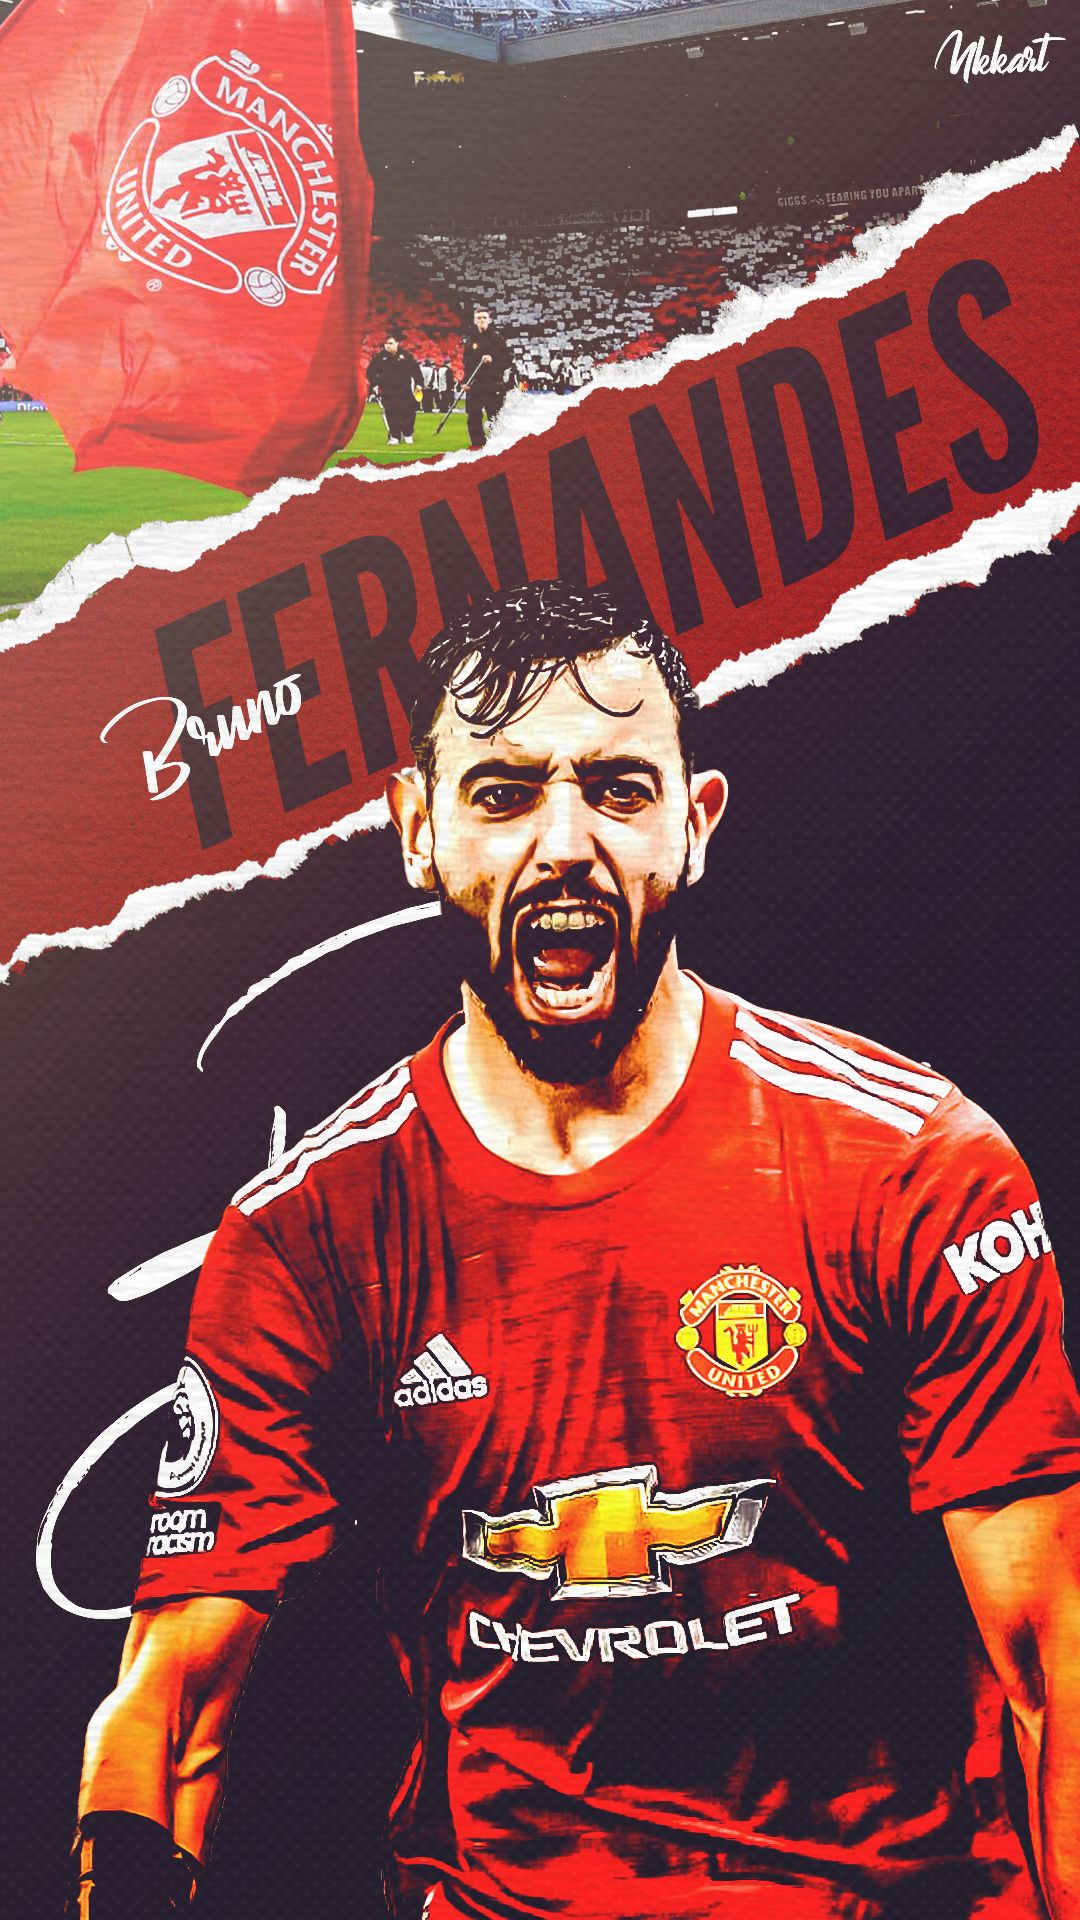 Choose resolution & download this wallpaper. 900 Man United Ideas In 2021 Man United Manchester United Football Club Manchester United